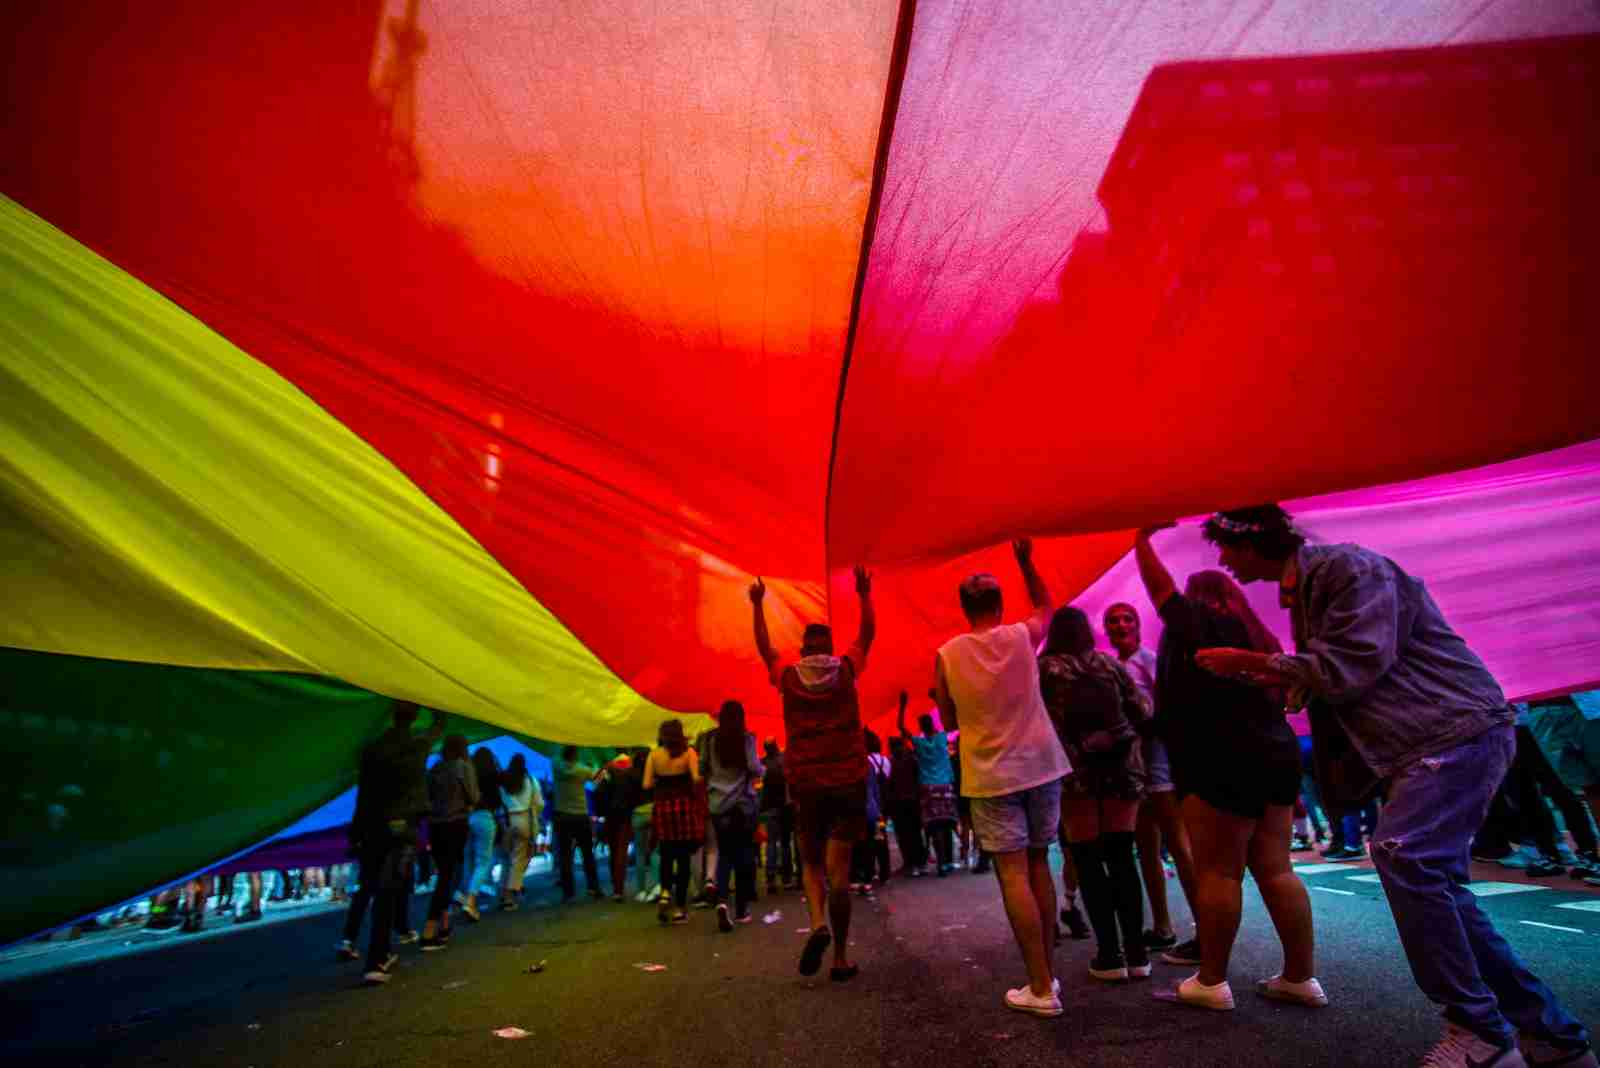 Sao Paulo hosts the 22nd annual LGBT Parade. (Photo by NurPhoto / Getty Images)